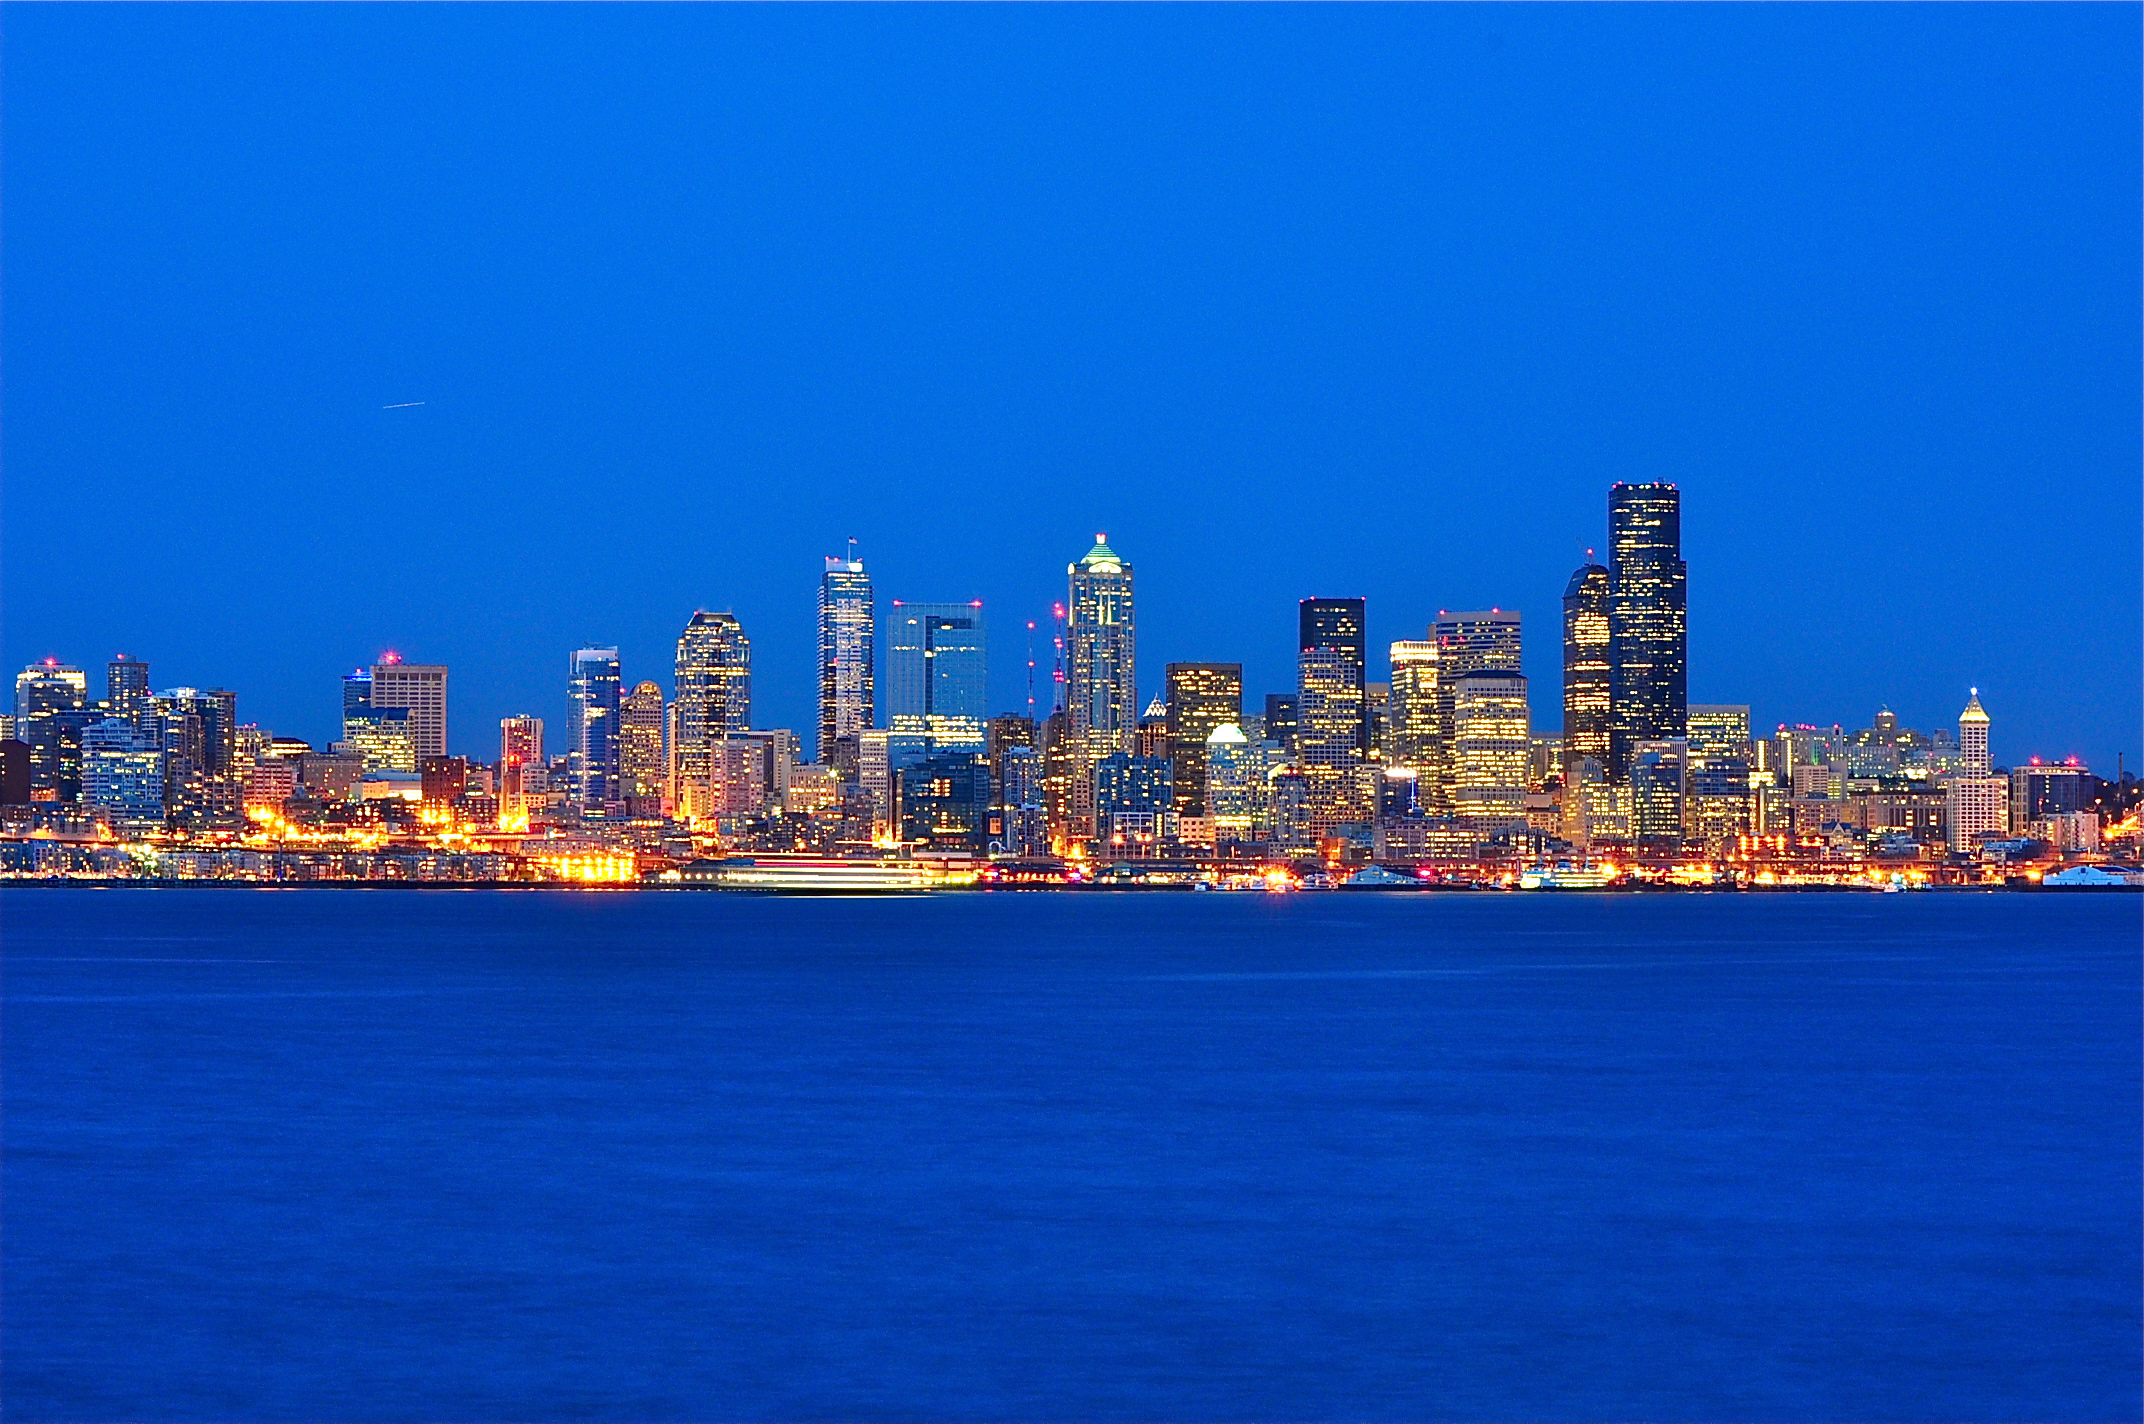 Seattle Skyline at Night From